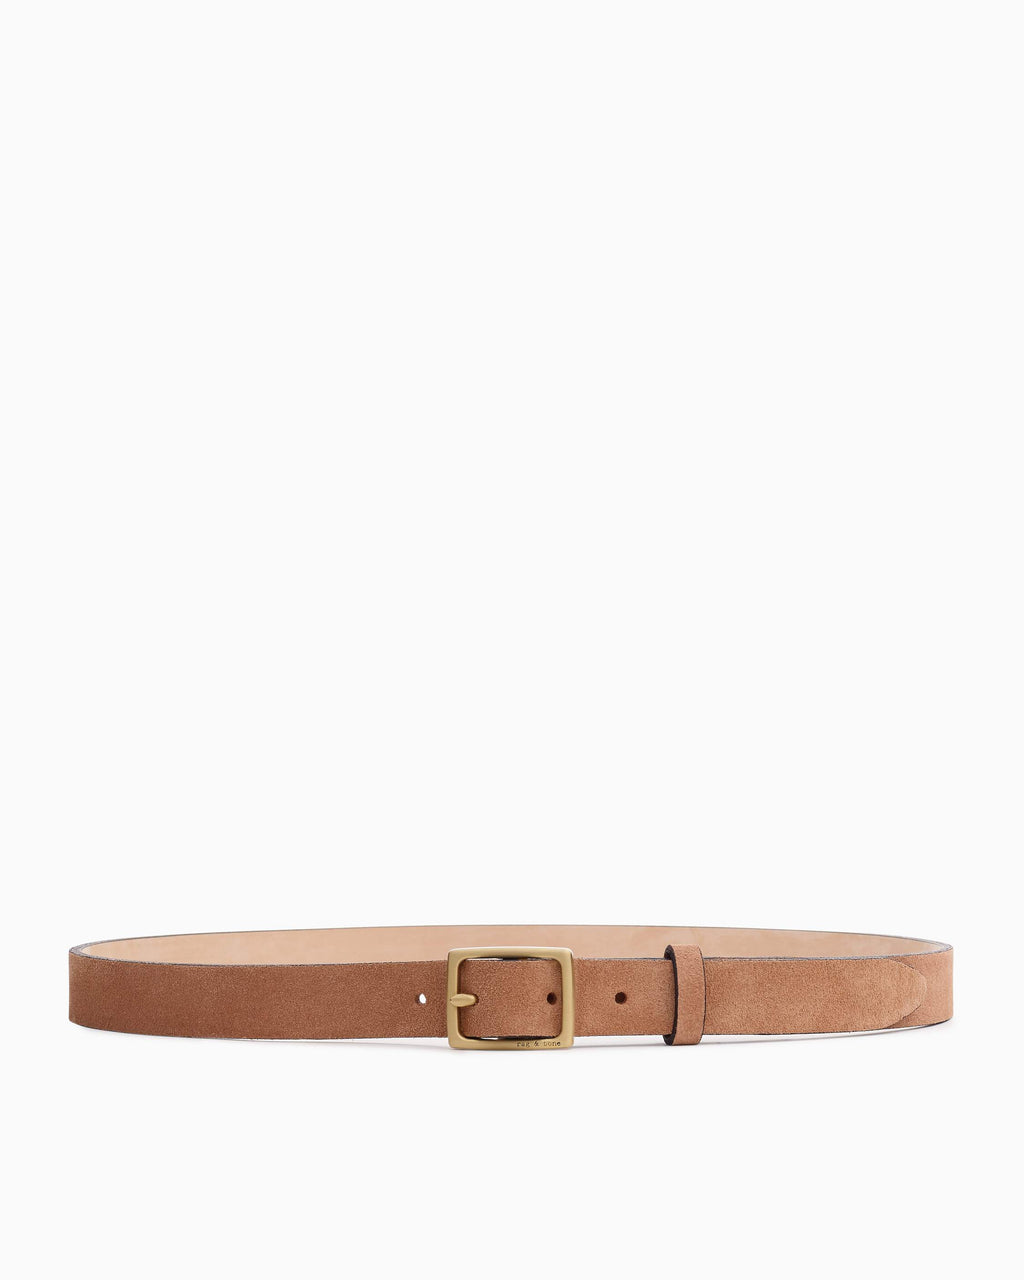 Rag & bone baby boyfriend belt in blush suede 2